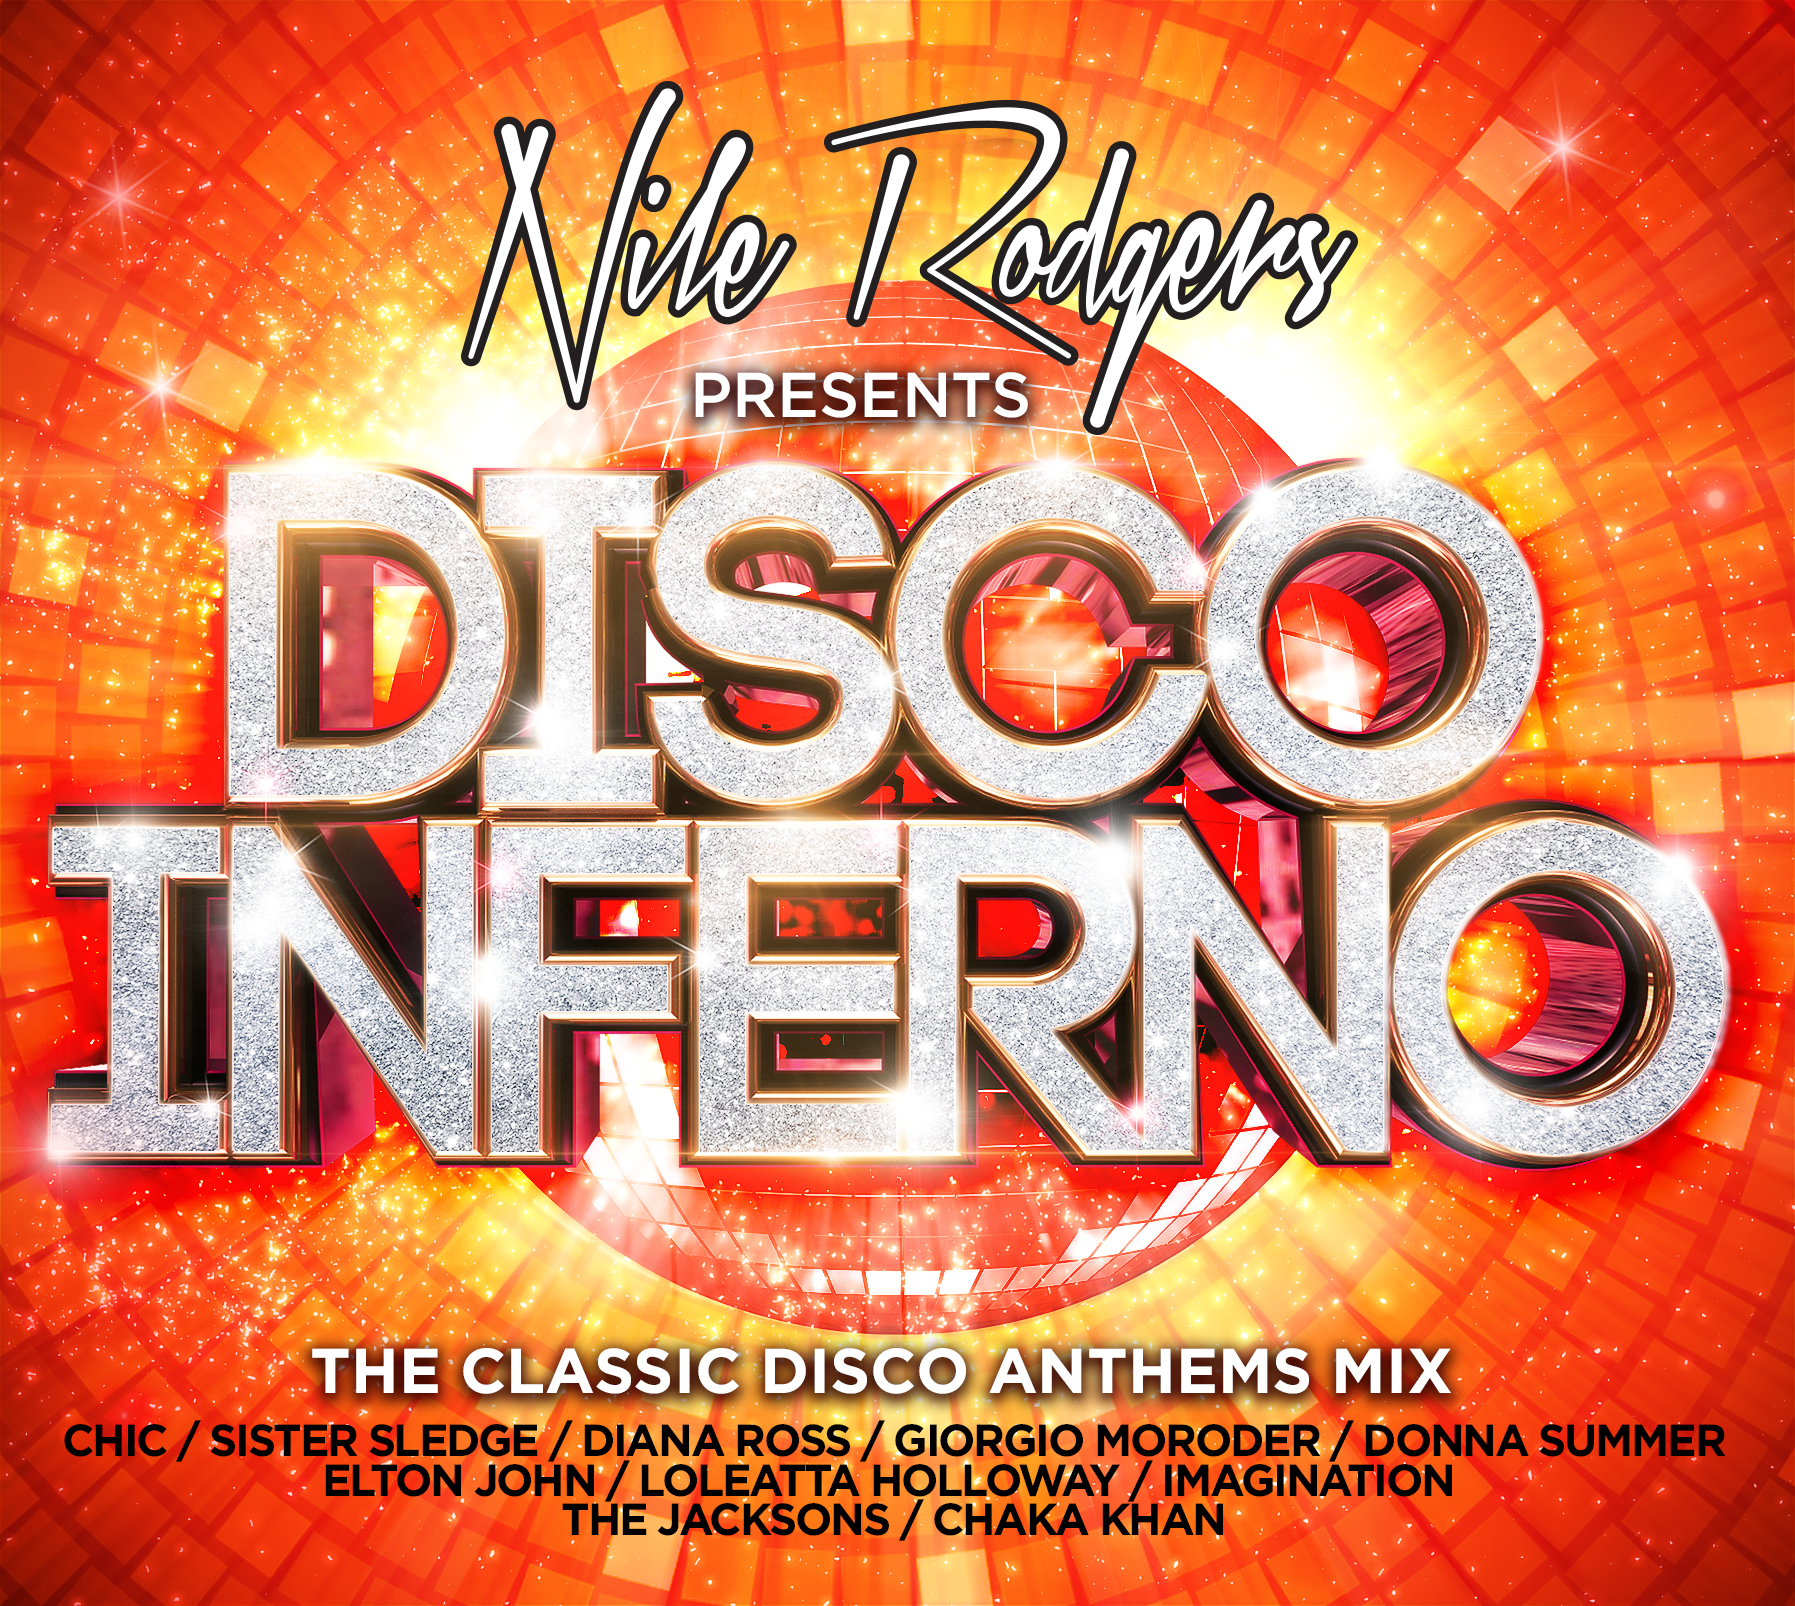 how tall is disco inferno